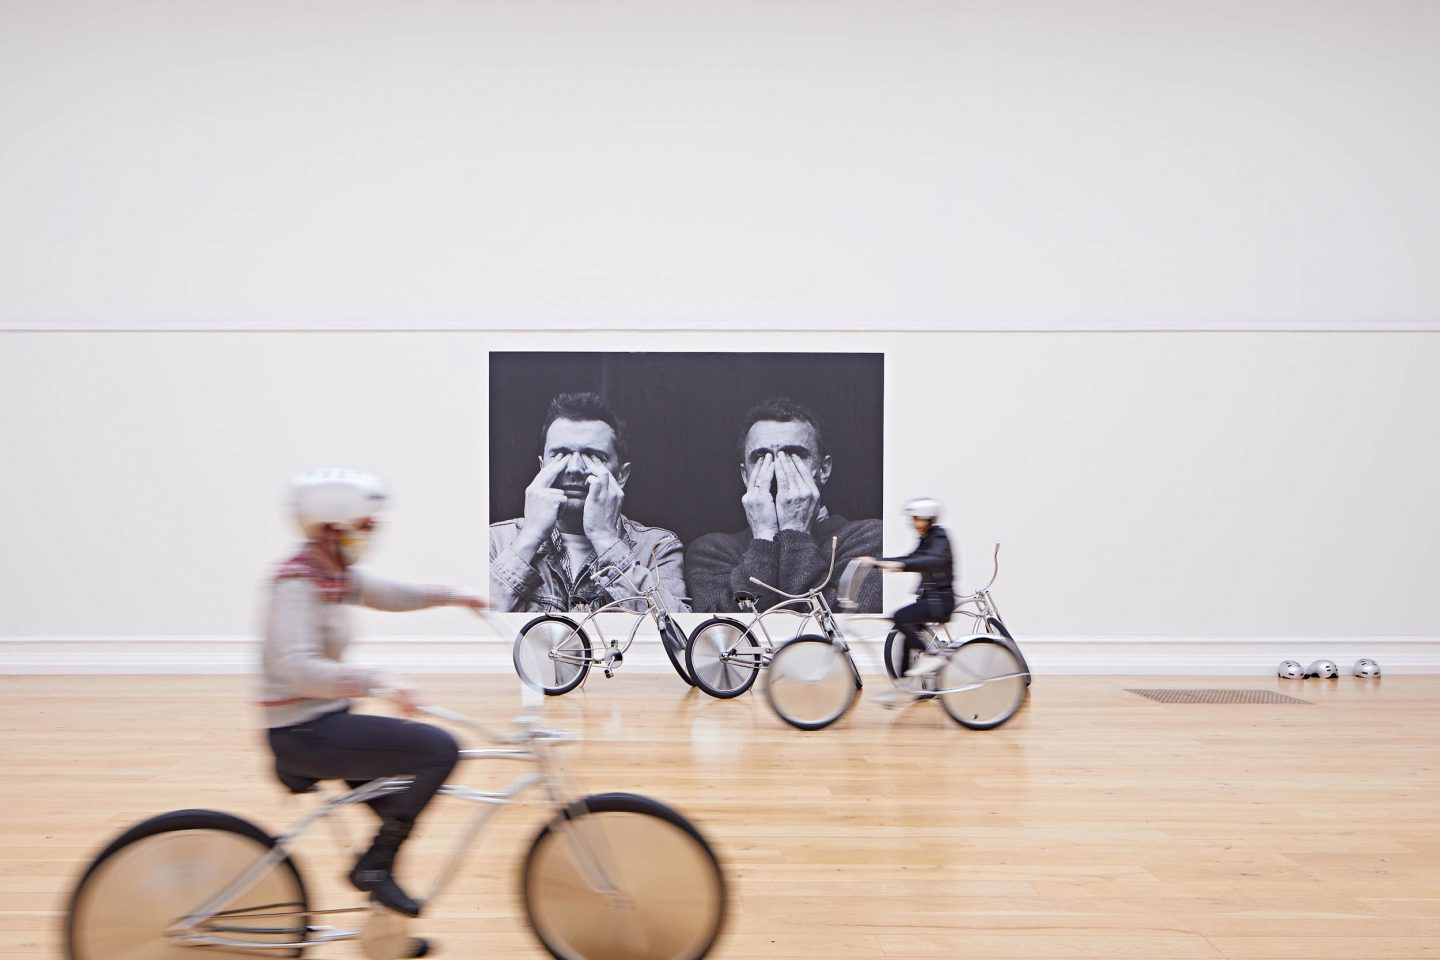 Ann Veronica Janssens at the South London Gallery Installation view of Bikes, 2001 and Phosphènes, 1997–2018 (left to right) by Ann Veronica Janssens Photo: Andy Stagg